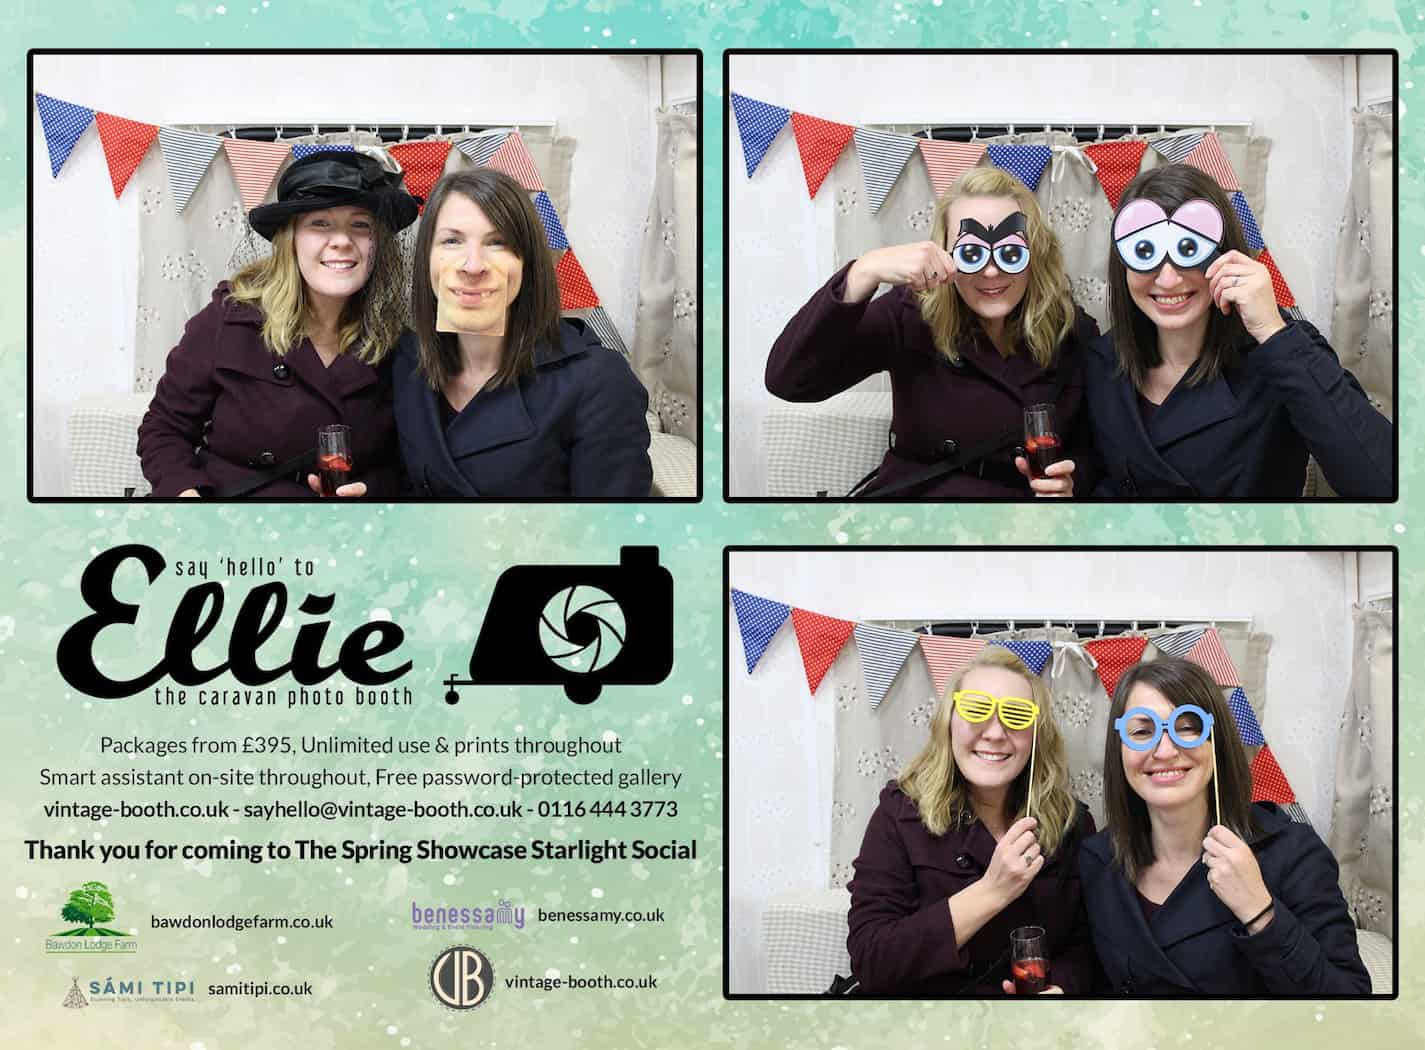 Vintage Photo Booth Sami Tipi Showcase 20166